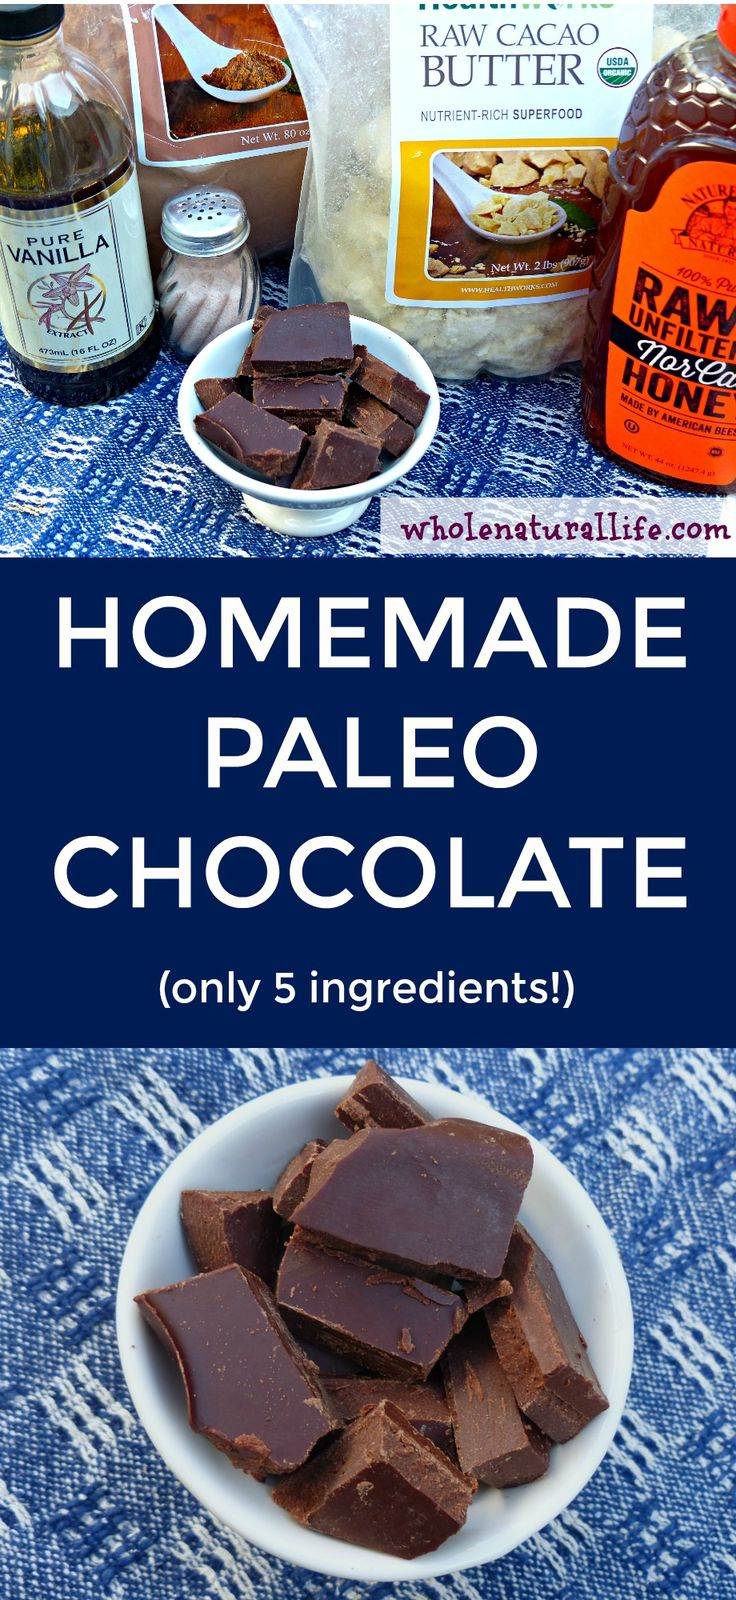 This homemade Paleo chocolate is only 5 ingredients and super simple to make!